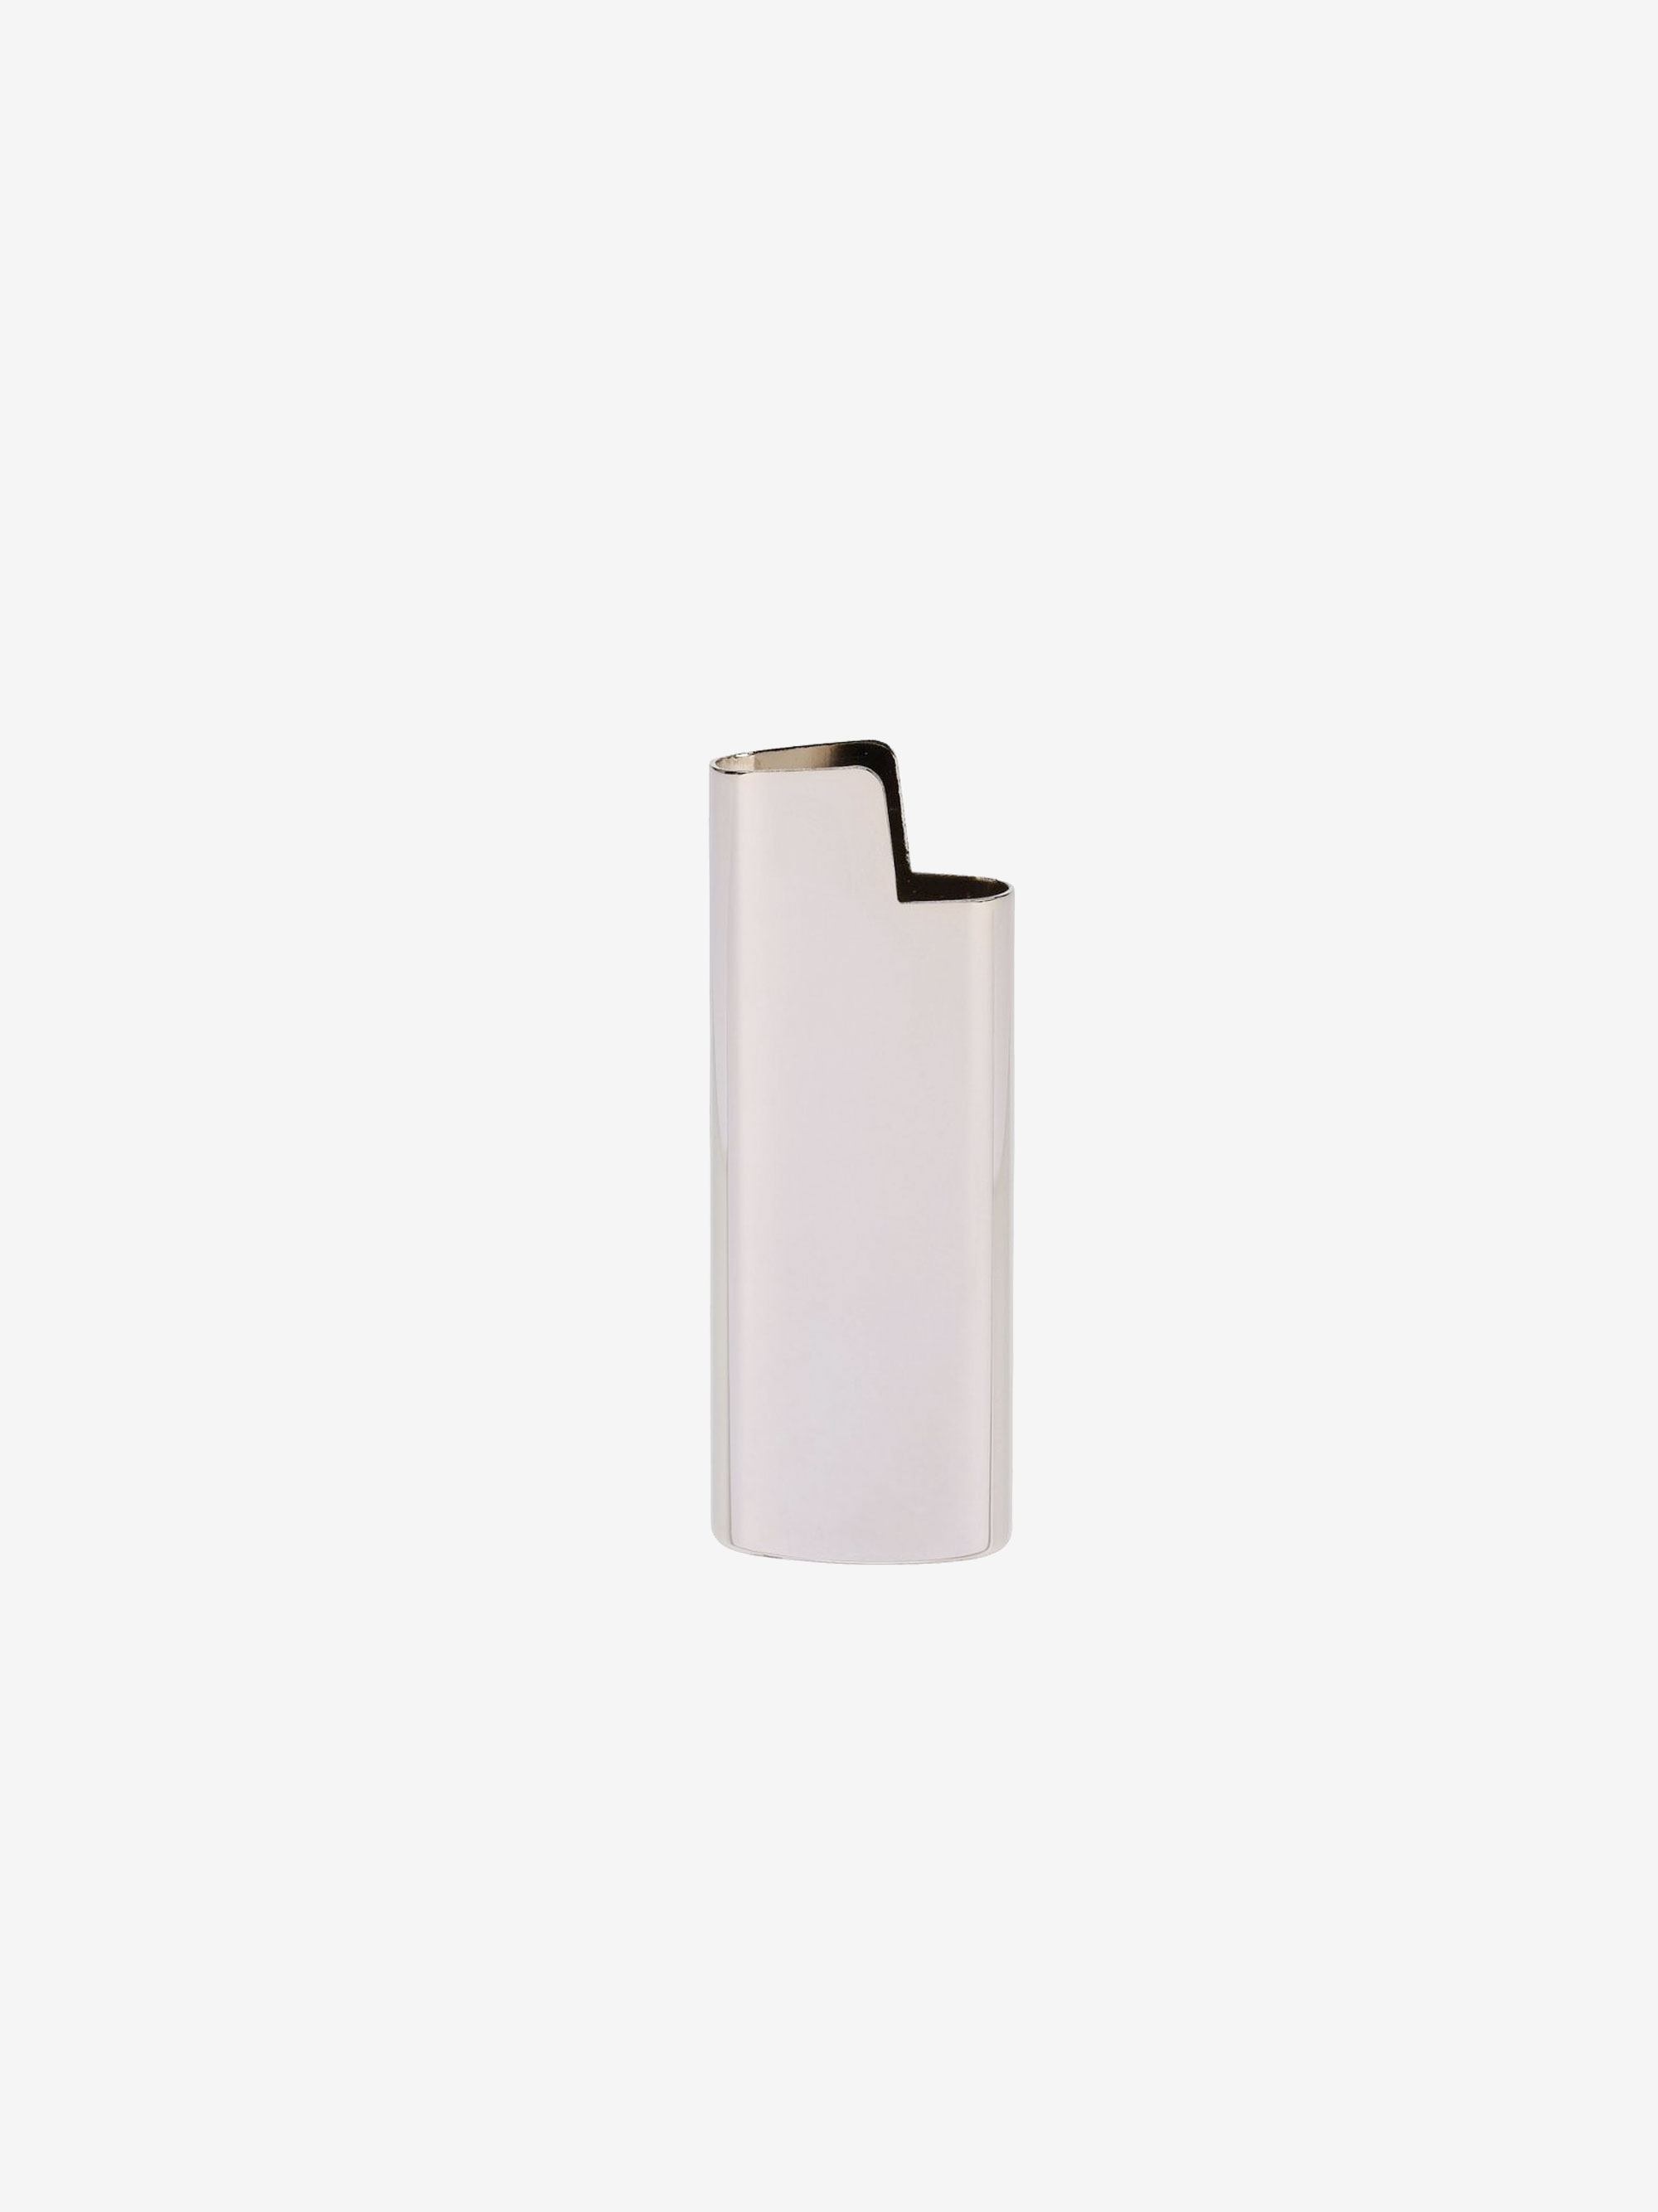 Mini BIC Lighter Holder Silver